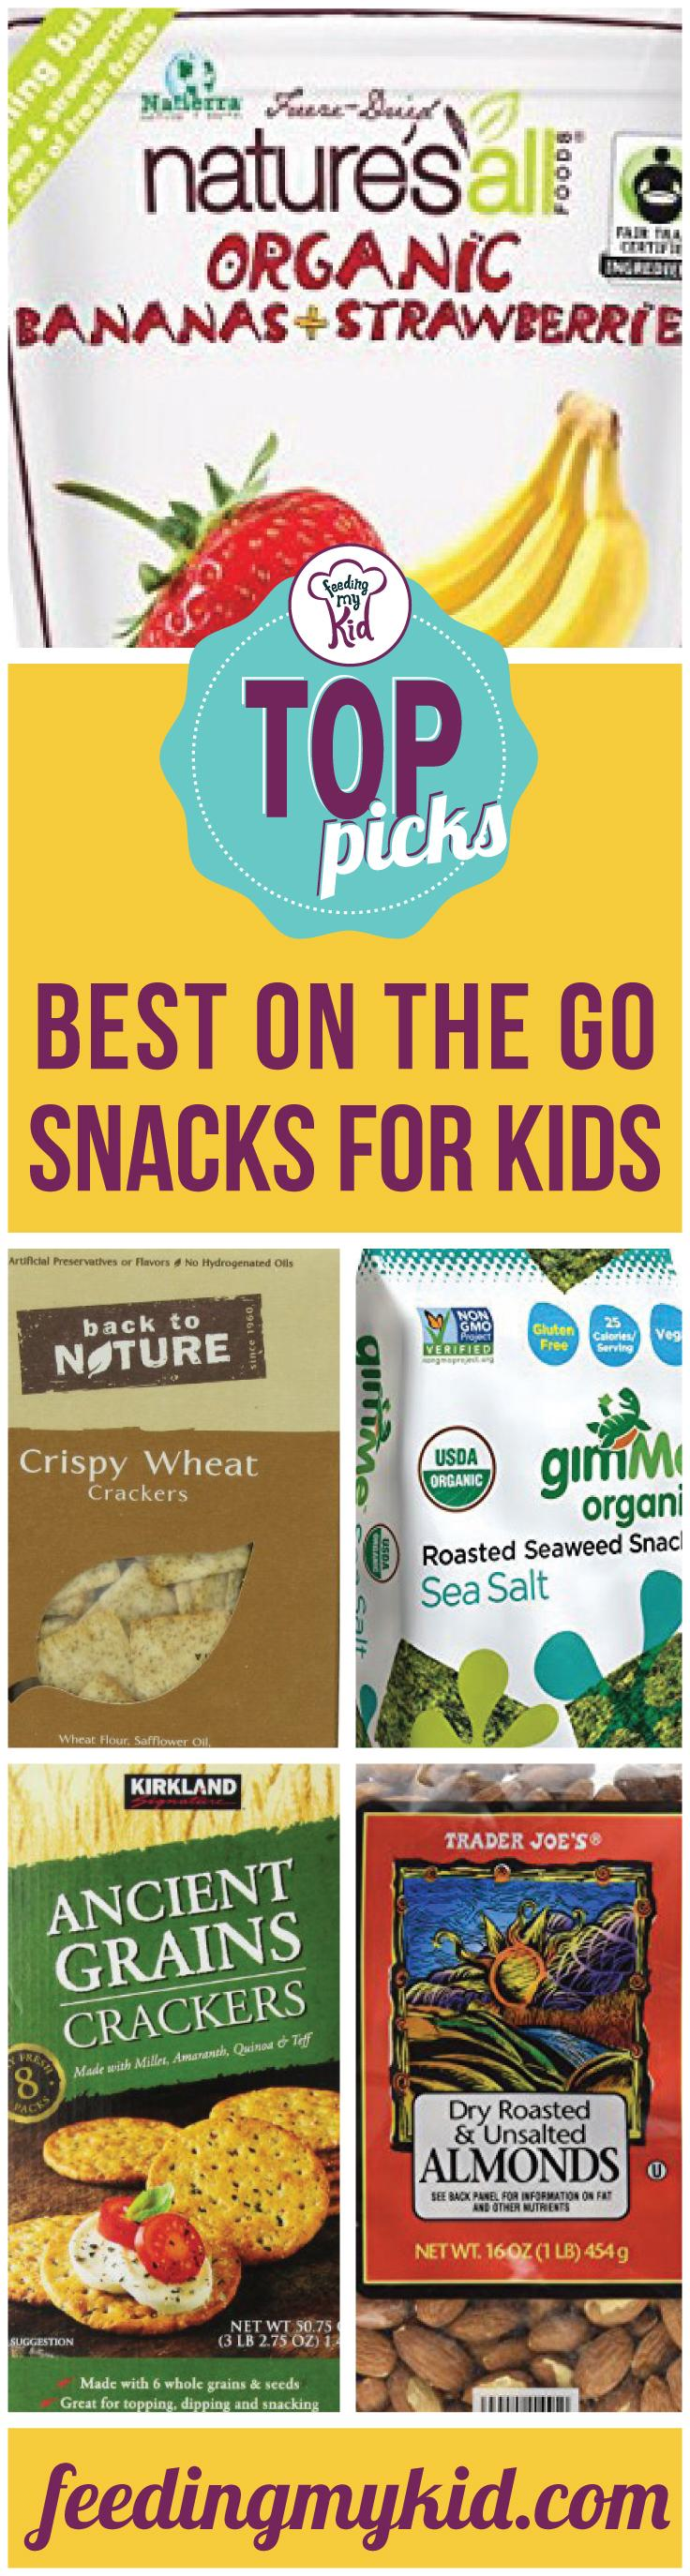 Top Picks: Best On The Go Snacks For Kids - Remember why healthy snacks are important. Snacks contribute a lot to your child's diet. Snack time is the perfect time to get nutrients in your kid. We've grouped these snacks together so it's an easier resource for you to use to find that perfect snack that you are looking for. We have edamame, chickpeas, seaweed, quinoa, crackers and dehydrated fruits & veggies. We have just what you're looking for, what you need, all here in one article made just for you, the parent on the go!